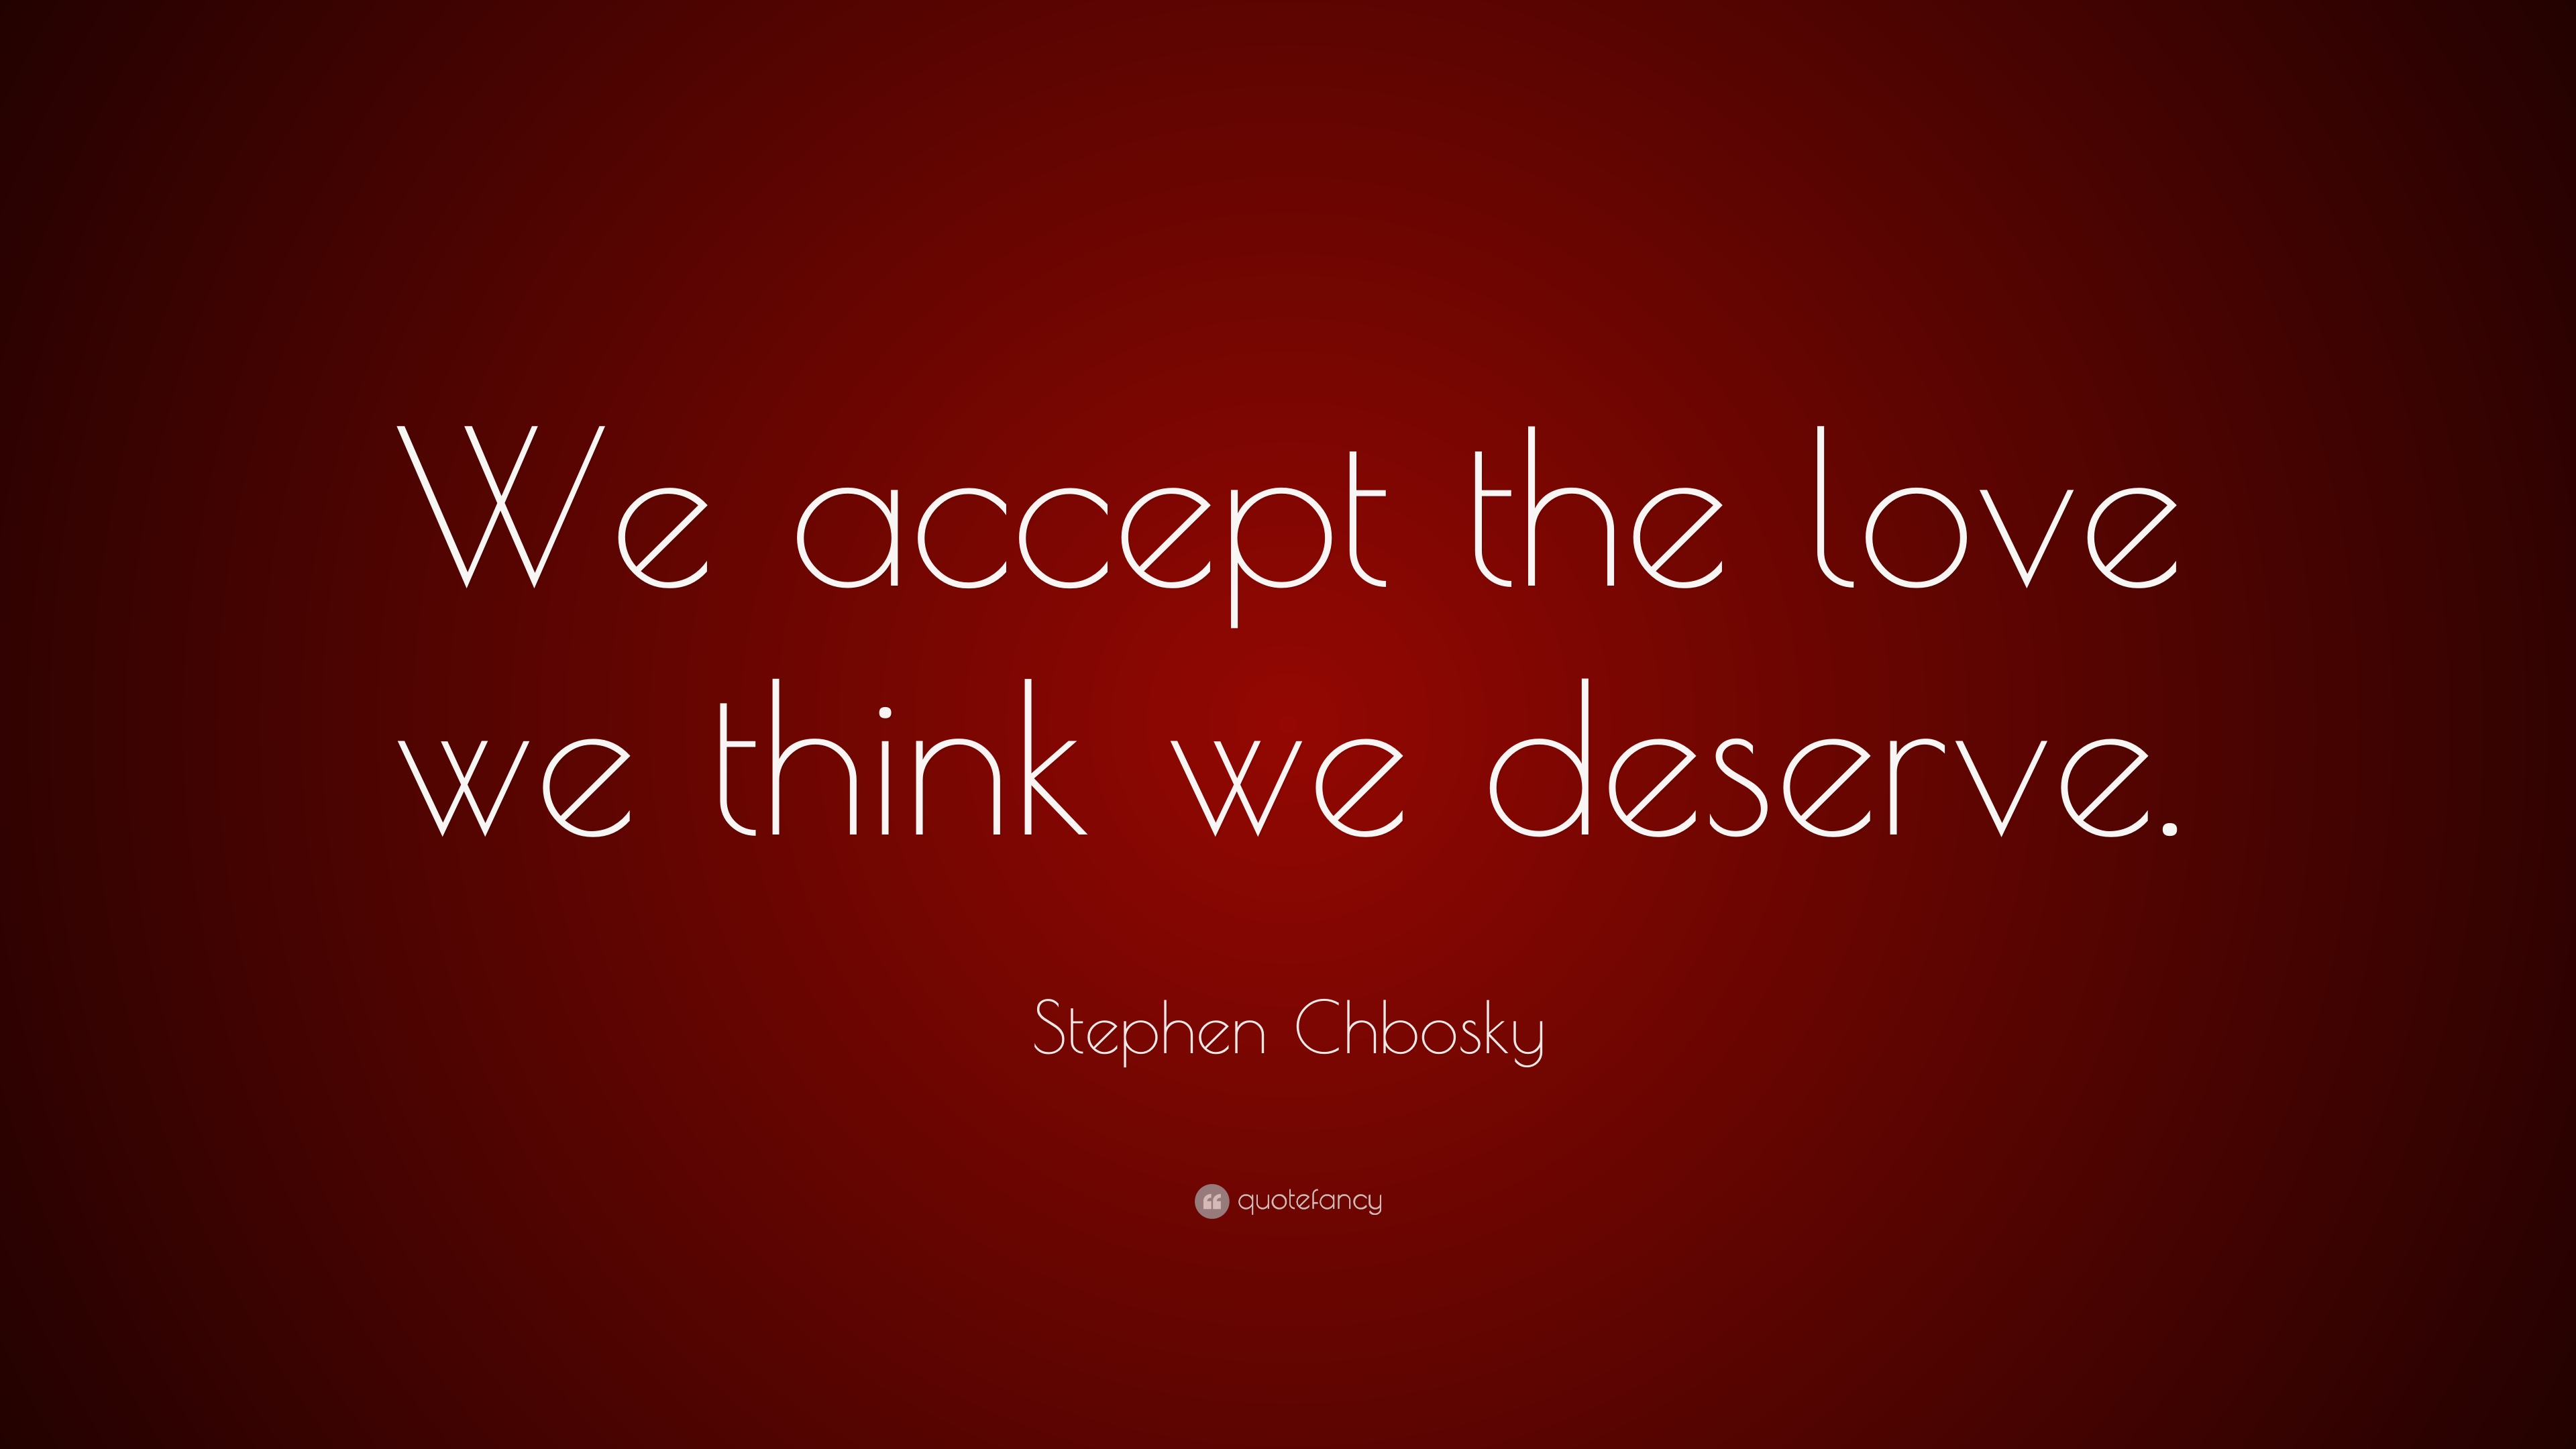 Why We Accept the Love We Think We Deserve